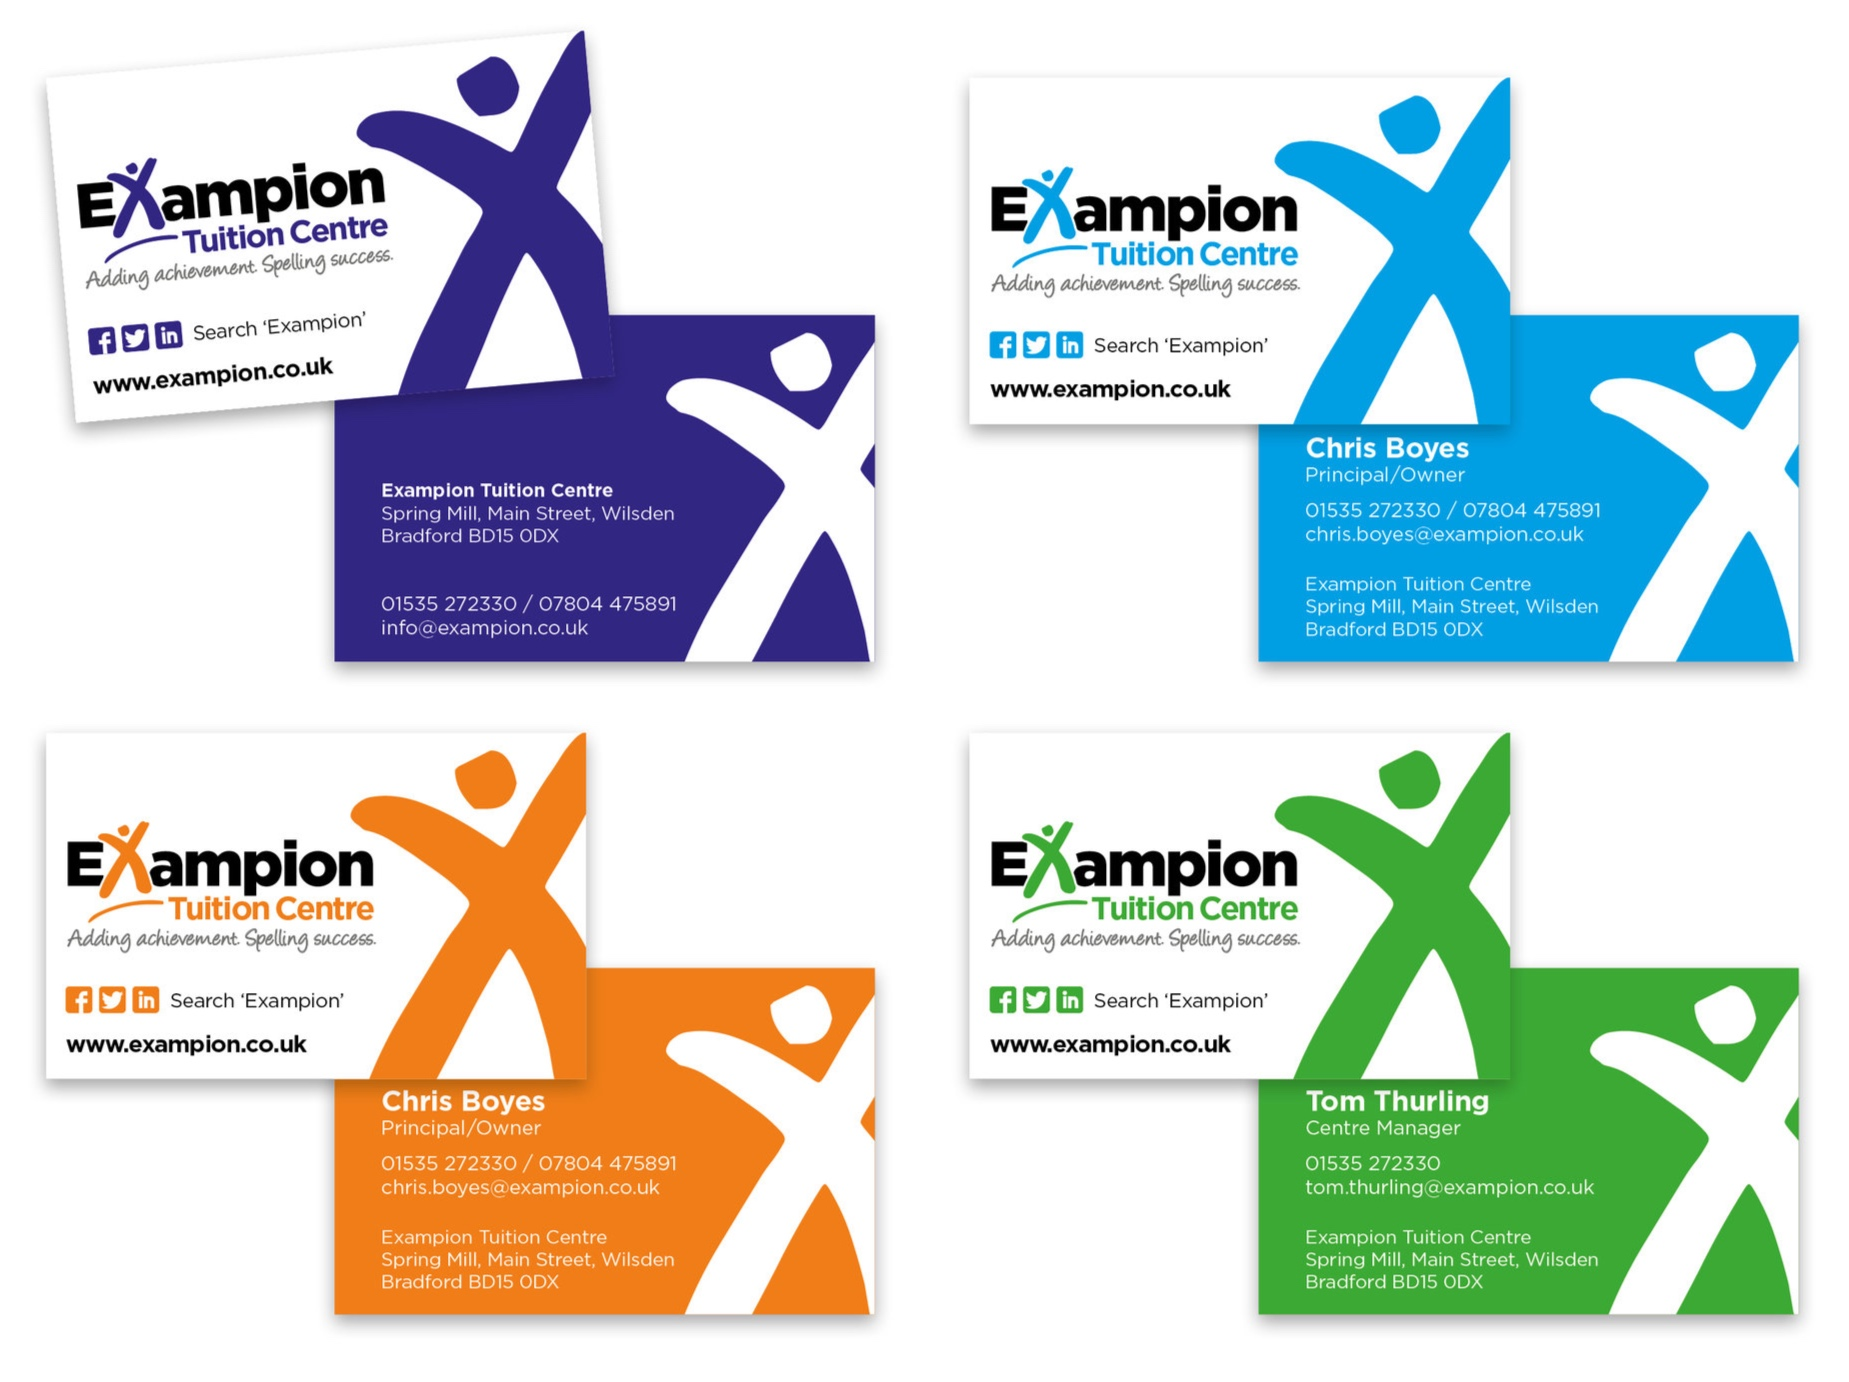 A set of colour-matched business cards were designed to distinguish between the Primary and Secondary levels of education and the roles of different members of staff.